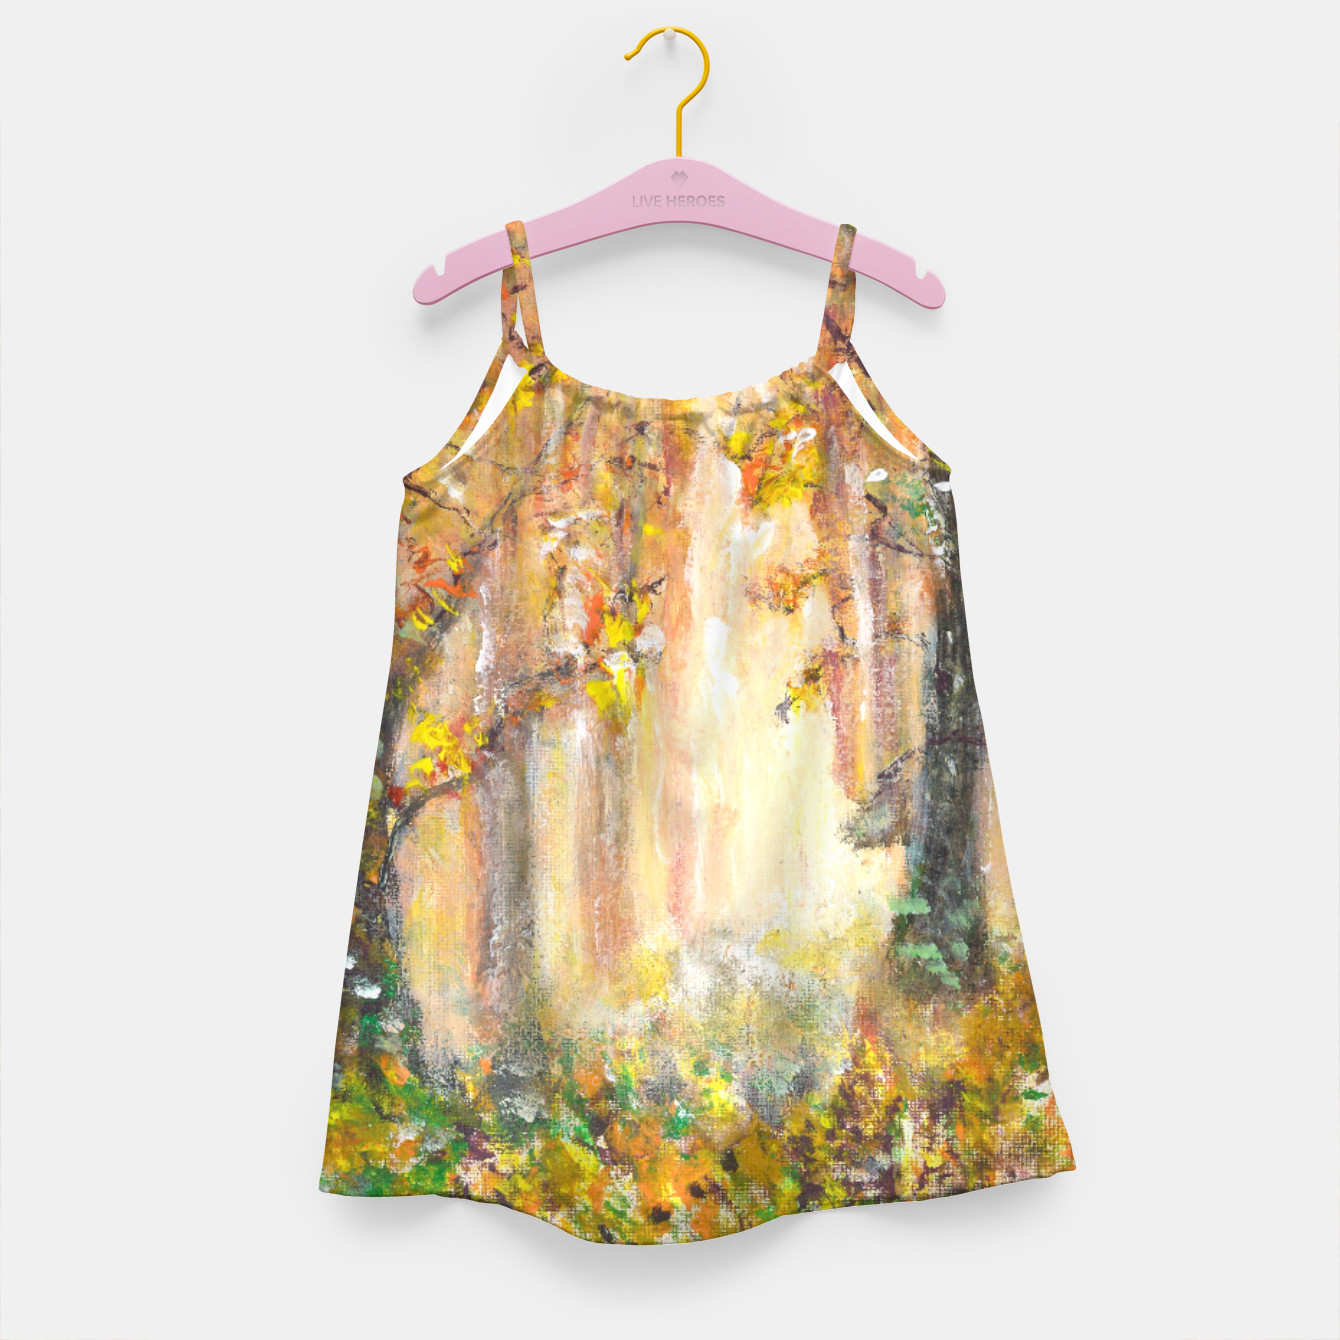 Foto Magical Forest 600dpi scan of original acrylic art Girl's dress - Live Heroes